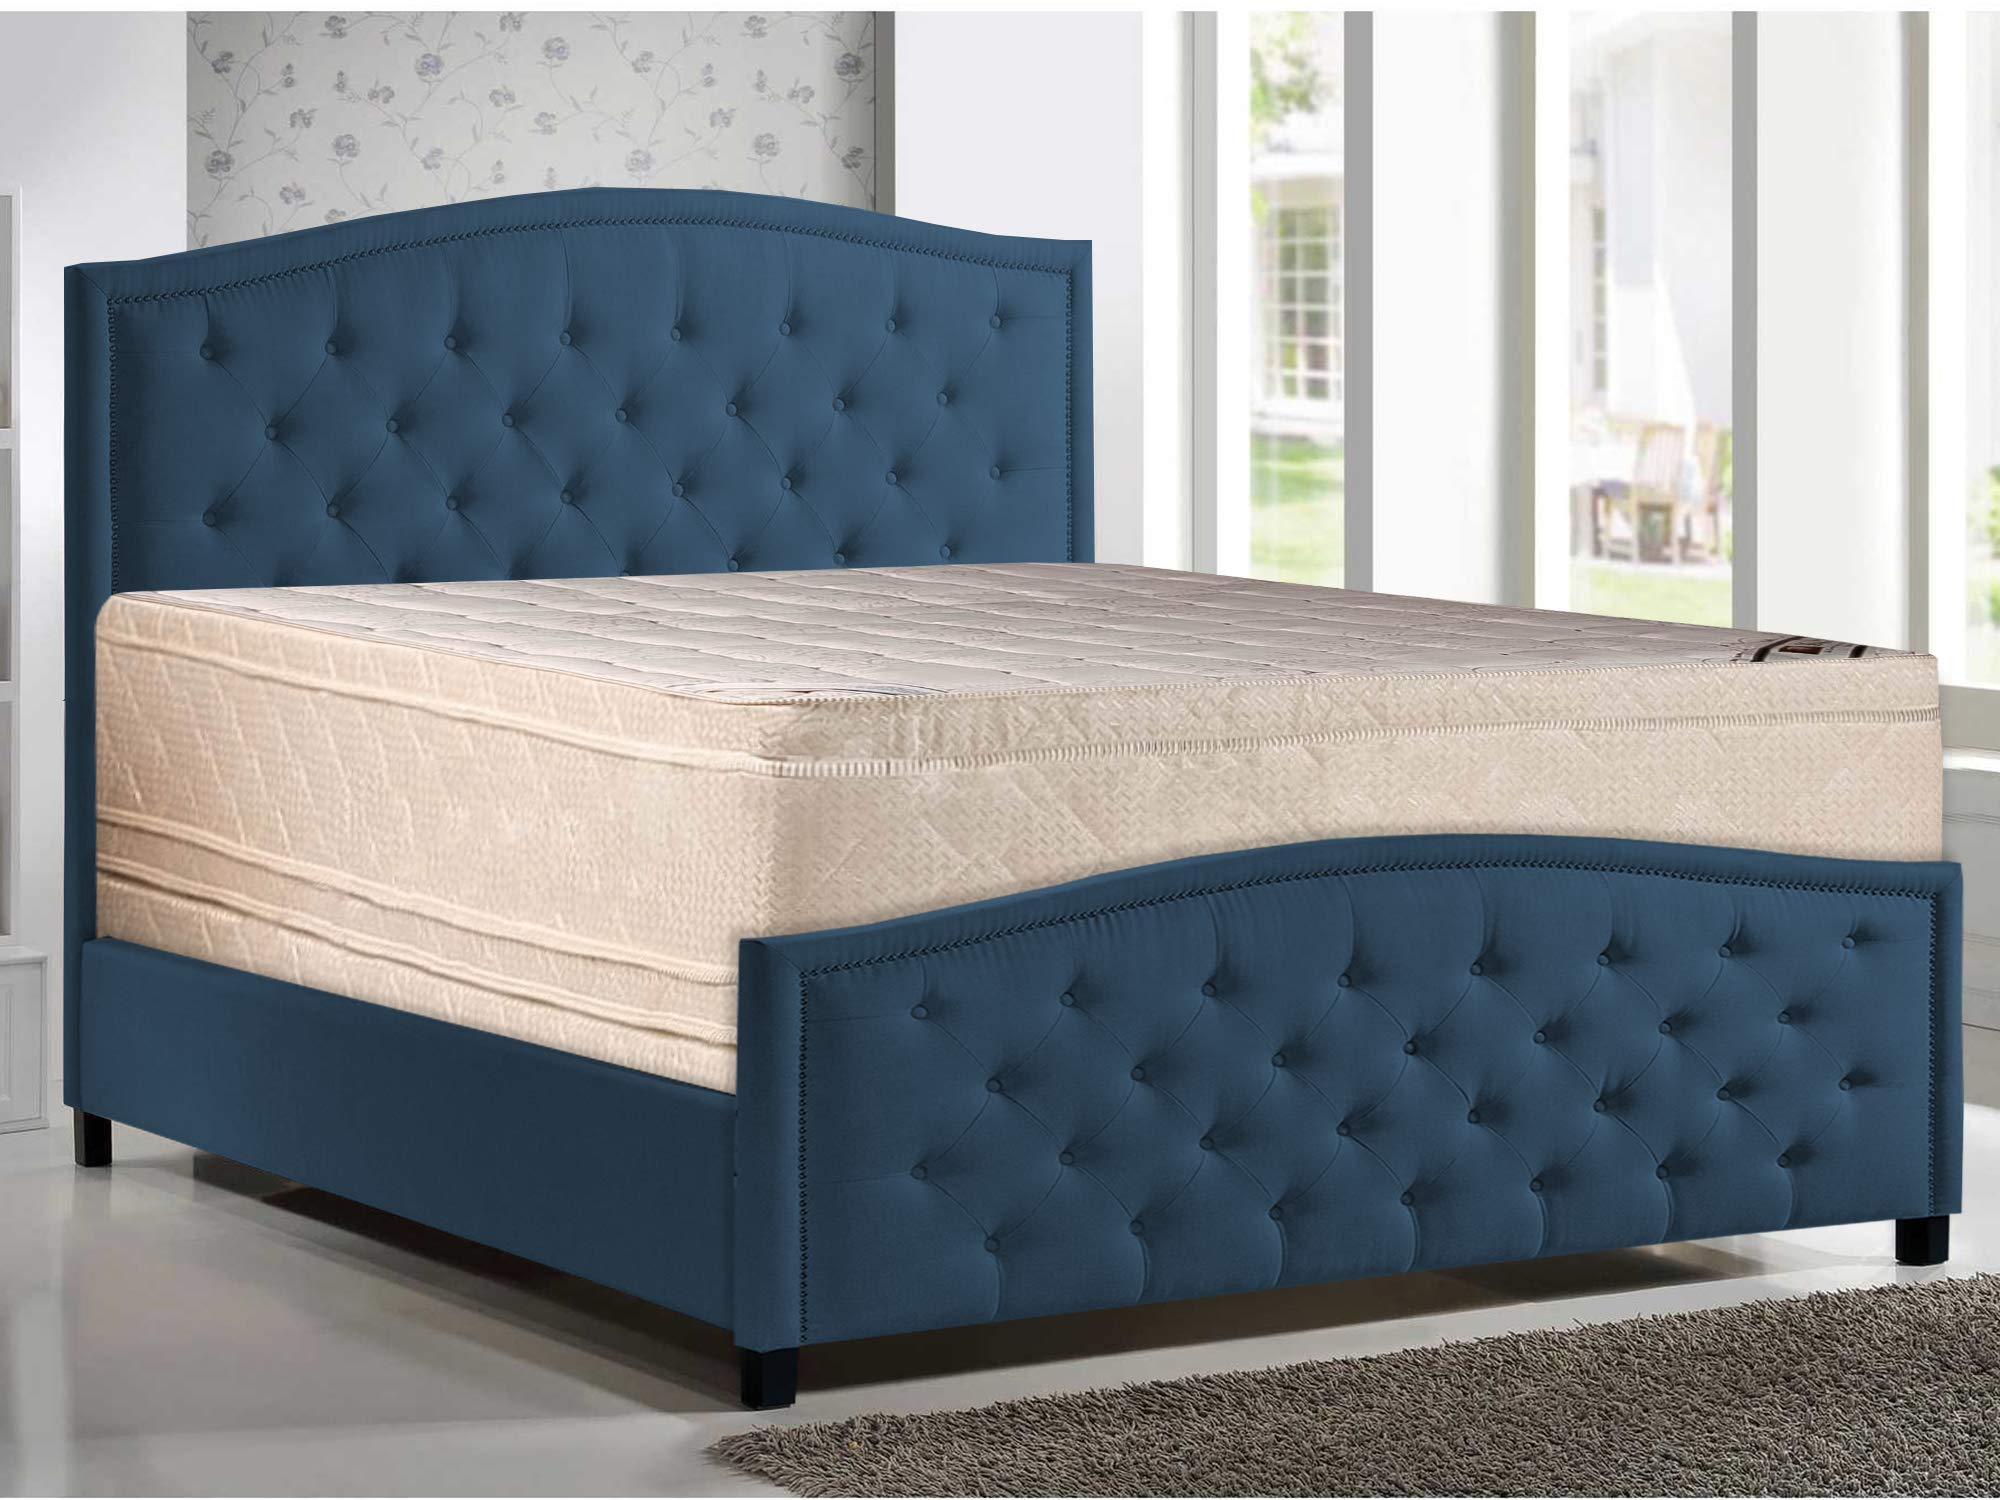 Mattress Solution, 10-Inch Meduim Firm Eurotop Pillowtop Foam Encased Hybrid Innerspring mattress and 4-inch Box Spring/Foundation Set, Good For Back, Twin Size by Mattress Solution